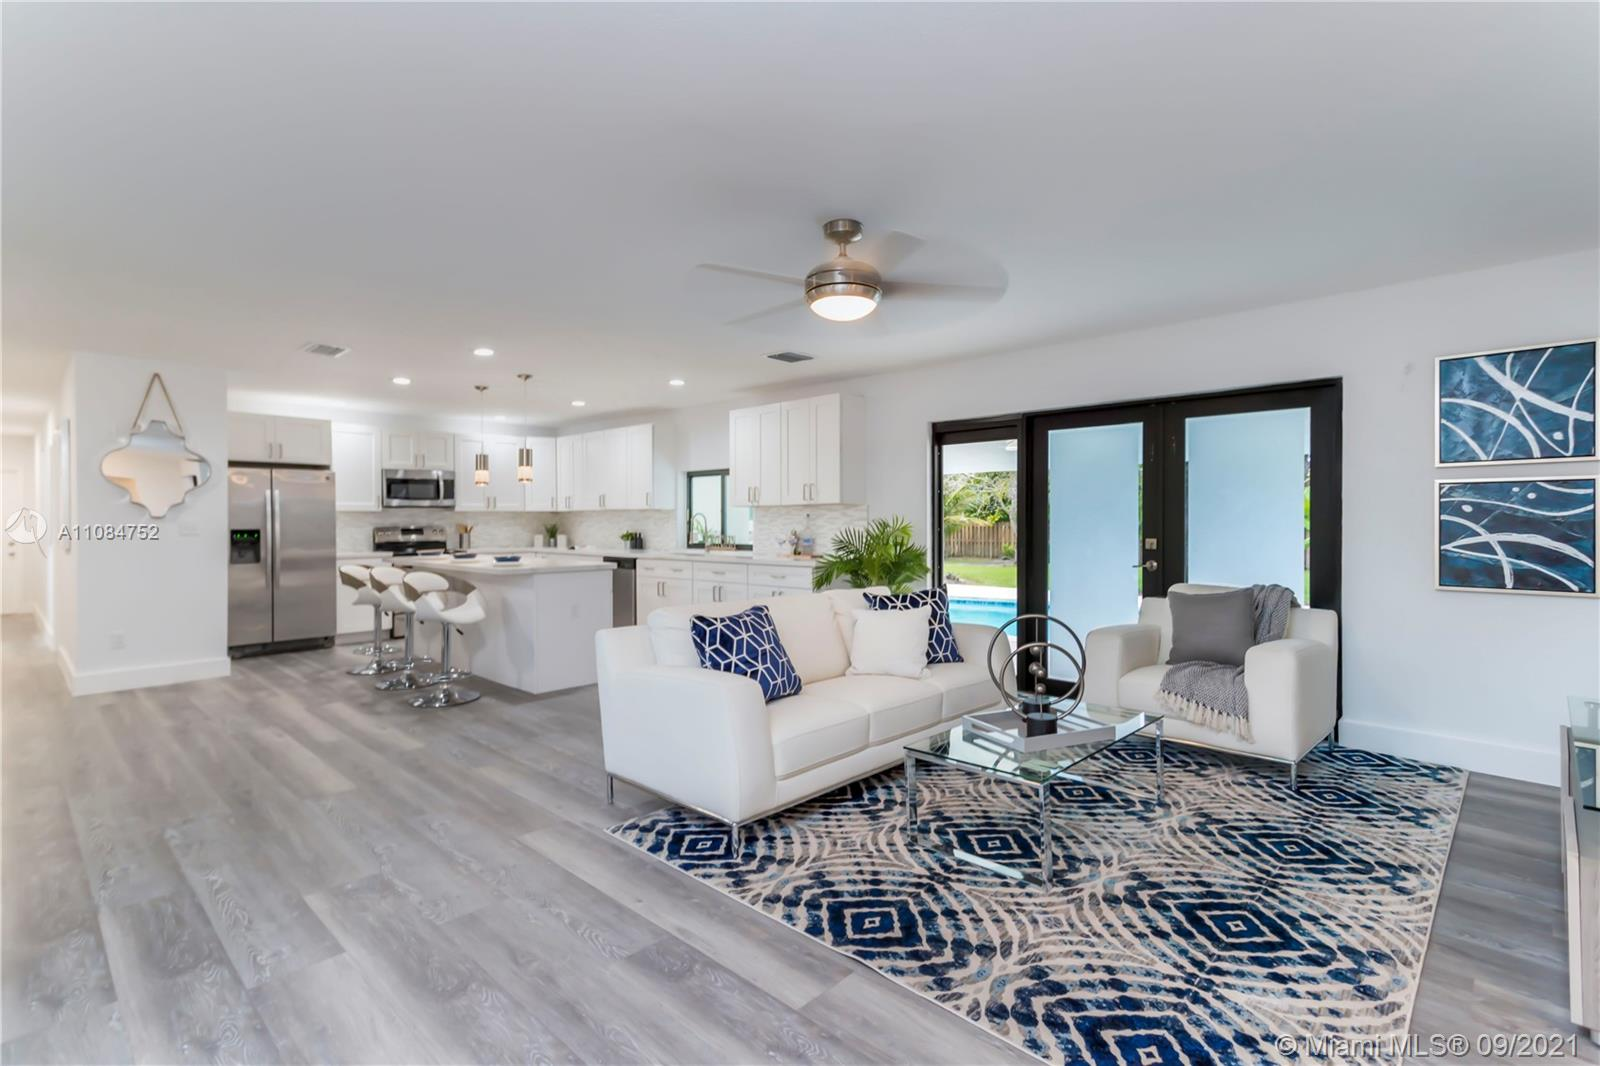 **OPEN HOUSE Saturday 9/18 11AM-1PM & Sunday 9/19 12PM-3PM**  Immaculate 5 bedroom 3 bathroom fully renovated, pool home in the highly desirable Palmetto Bay. This pristine, corner lot home sits on just under a half acre lot. Home features complete impact windows and doors, brand new roof, large kitchen and an open concept layout perfect for entertaining. Two large master suites with walk-in closets, split floor plan & spacious laundry room. Enormous backyard with plenty of space for an outdoor kitchen or future expansion. Recently resurfaced pool, brand new kitchen w/ SS appliances. New waterproof vinyl flooring, baseboards and freshly painted interior & exterior. Wonderful location & excellent school zone!